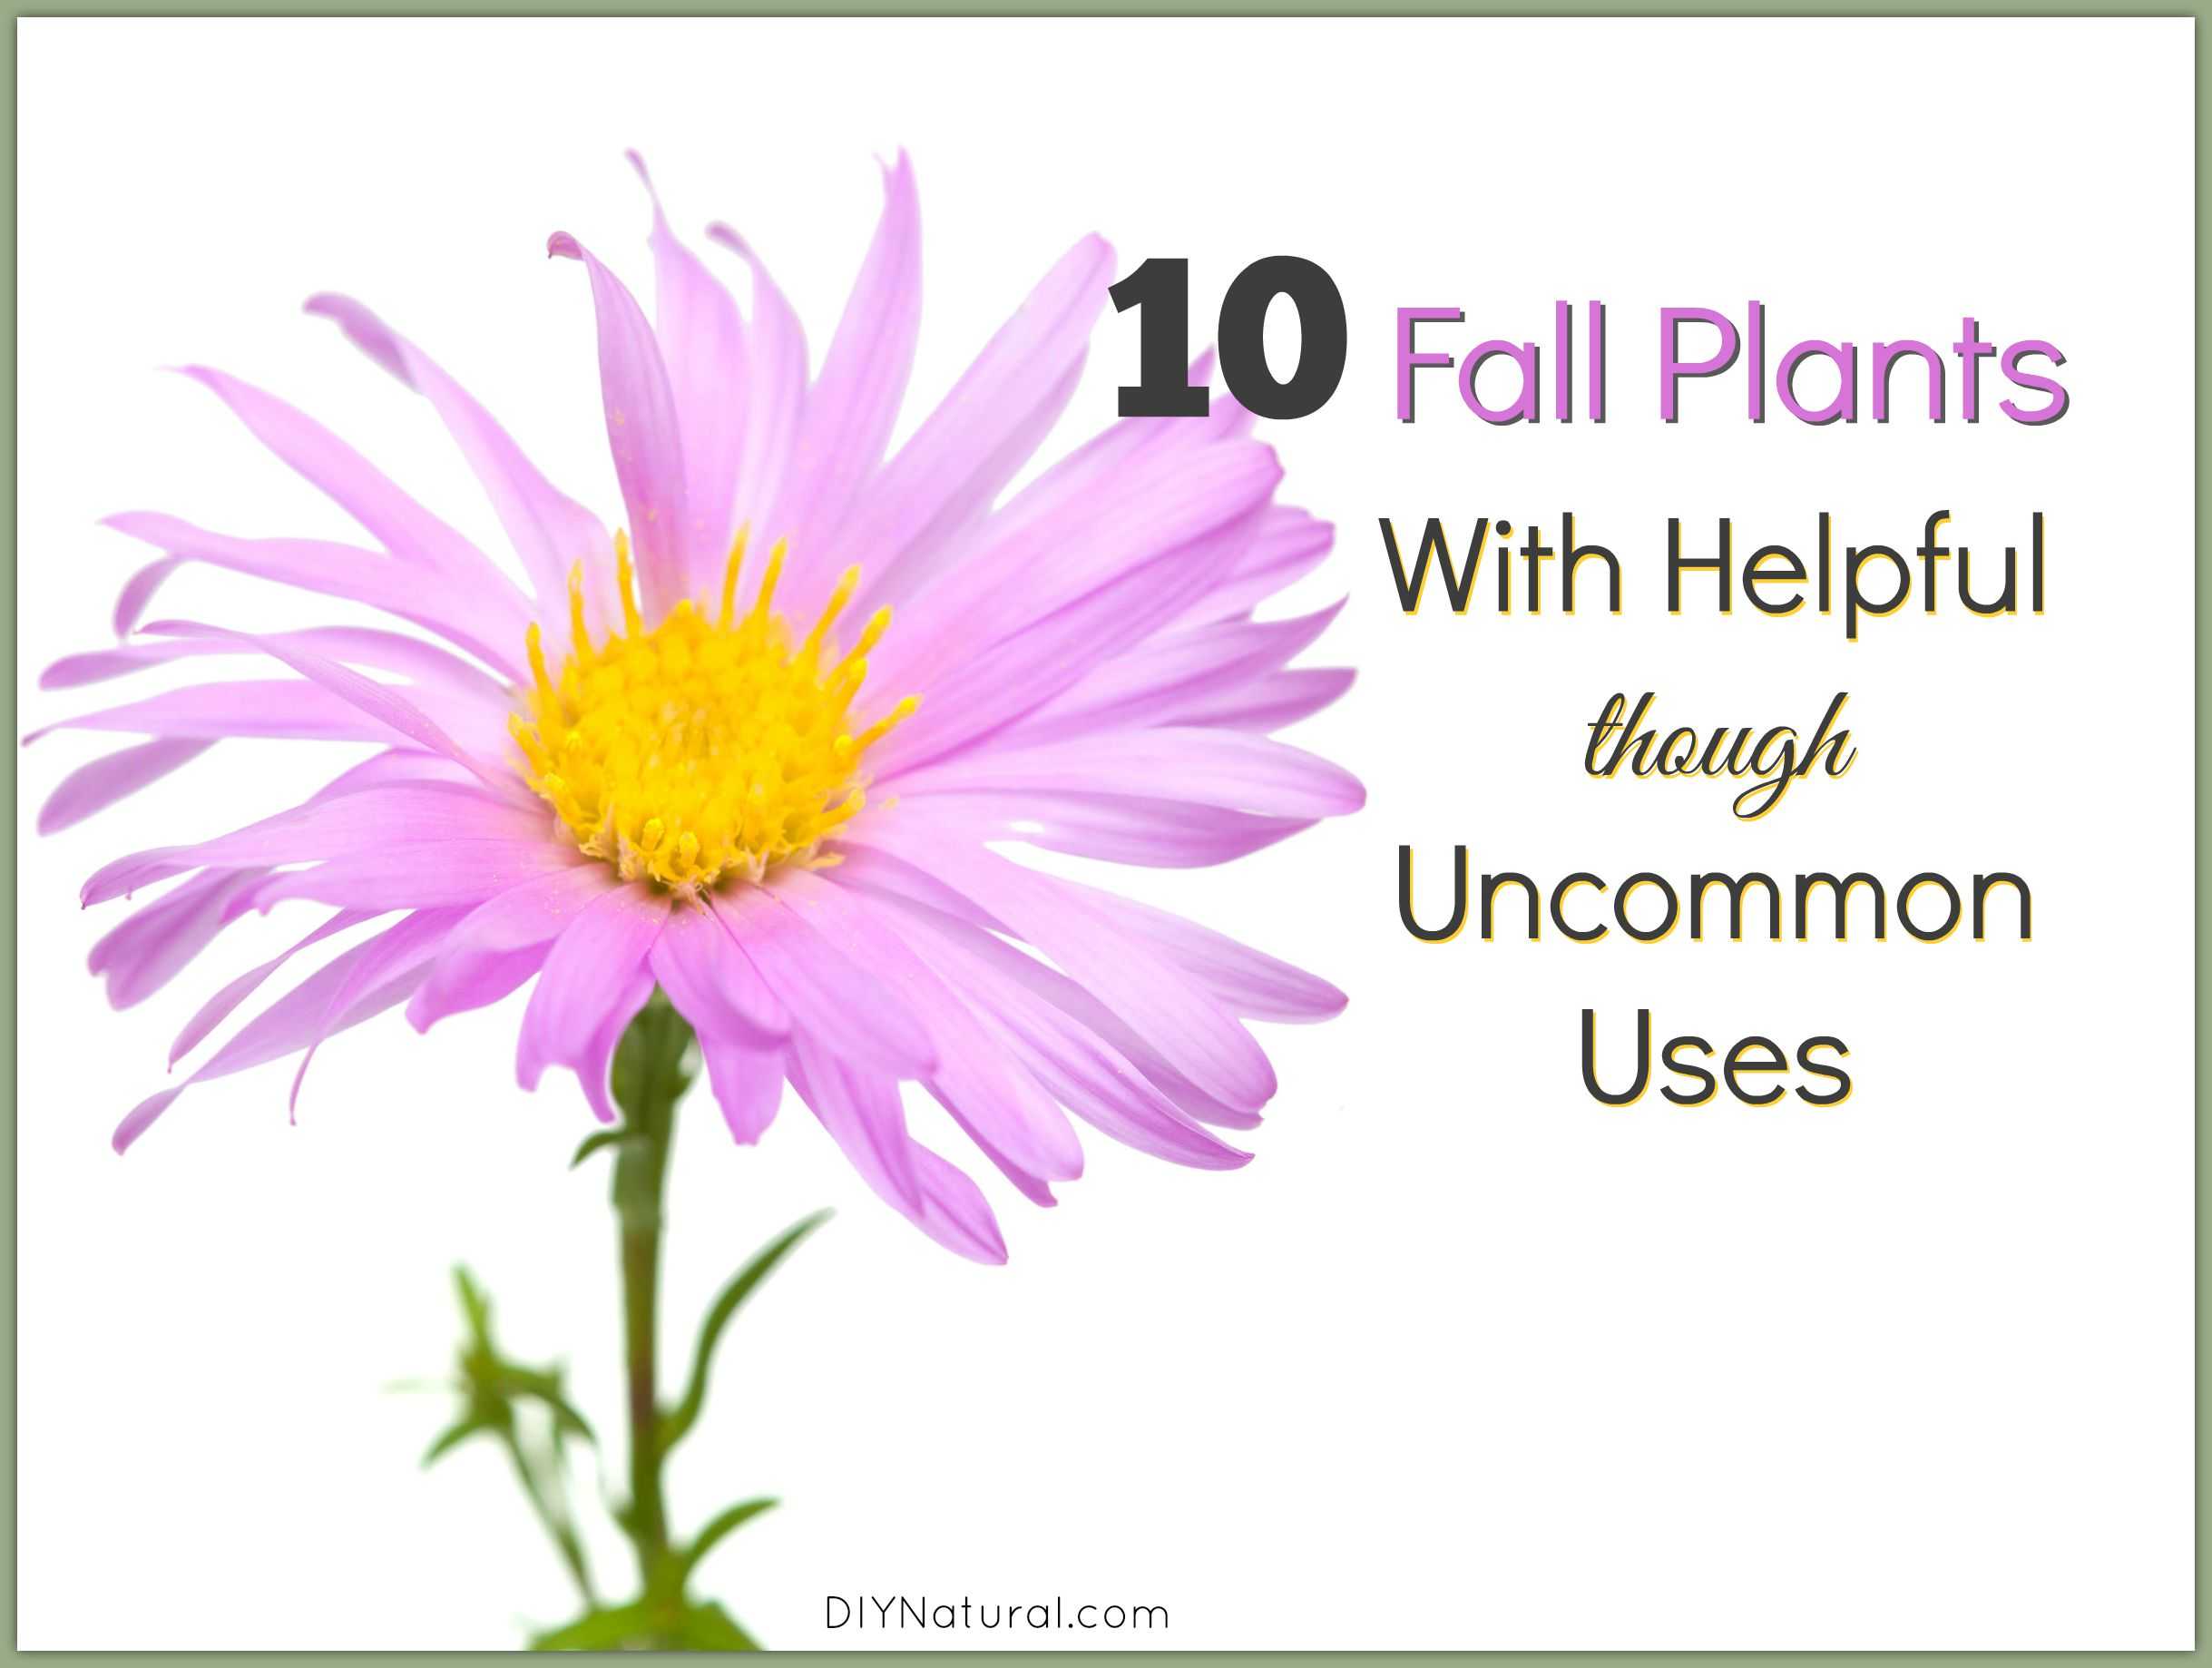 Fall plants with helpful uses you never knew about izmirmasajfo